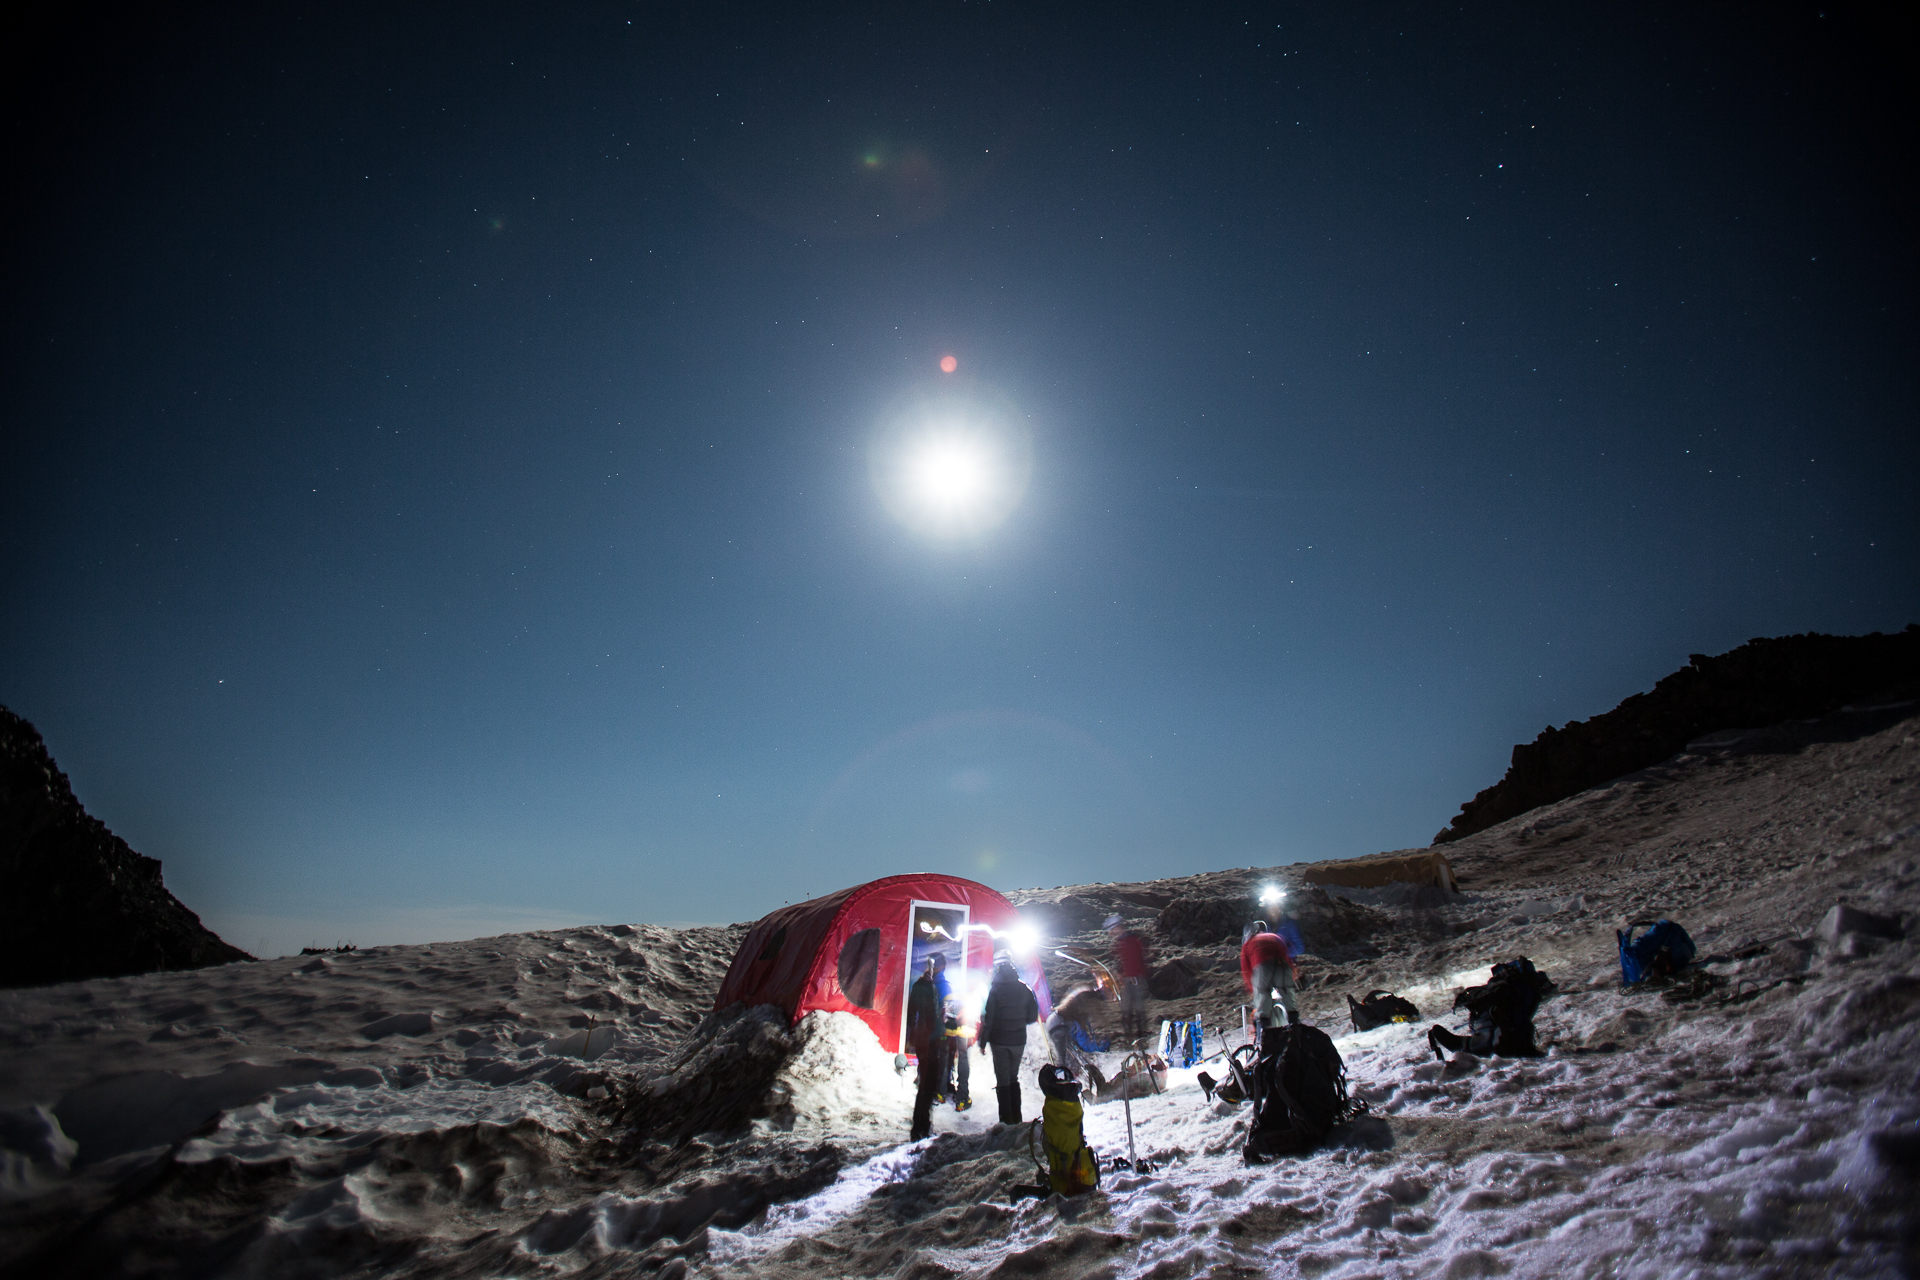 Getting ready for the summit push under a bright moon.  Photo by: Luke Humphrey